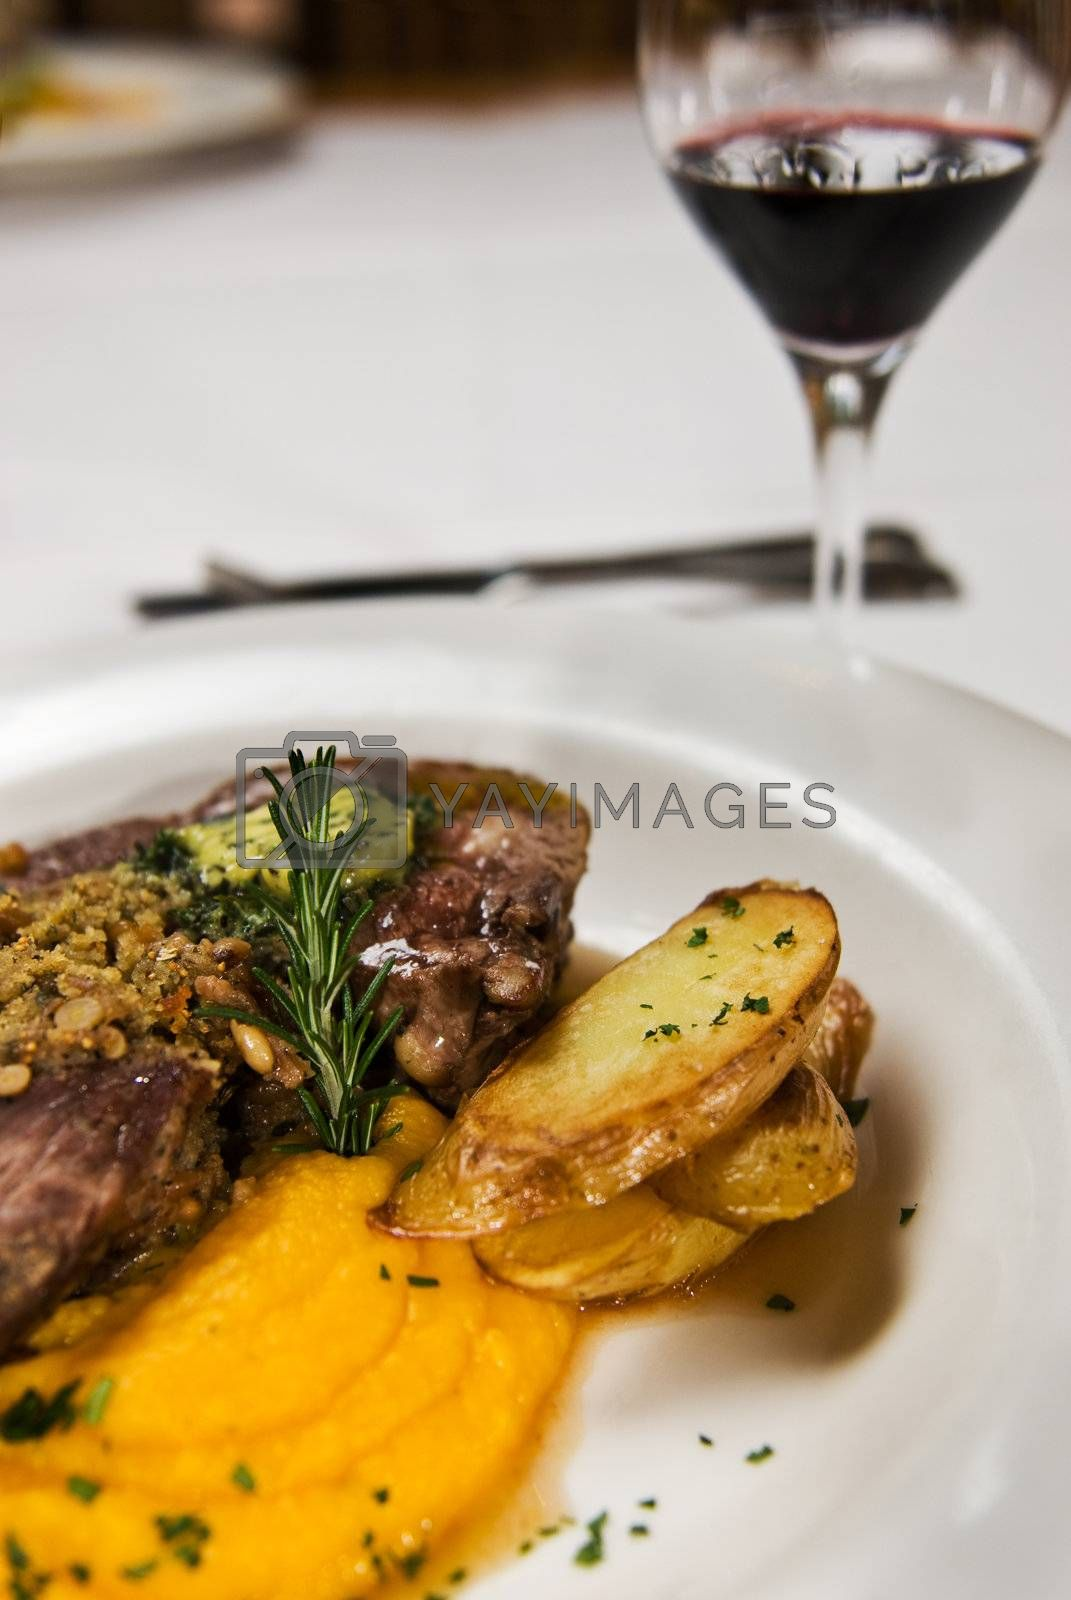 Meat, potato and pumpkin puree, served with red wine.